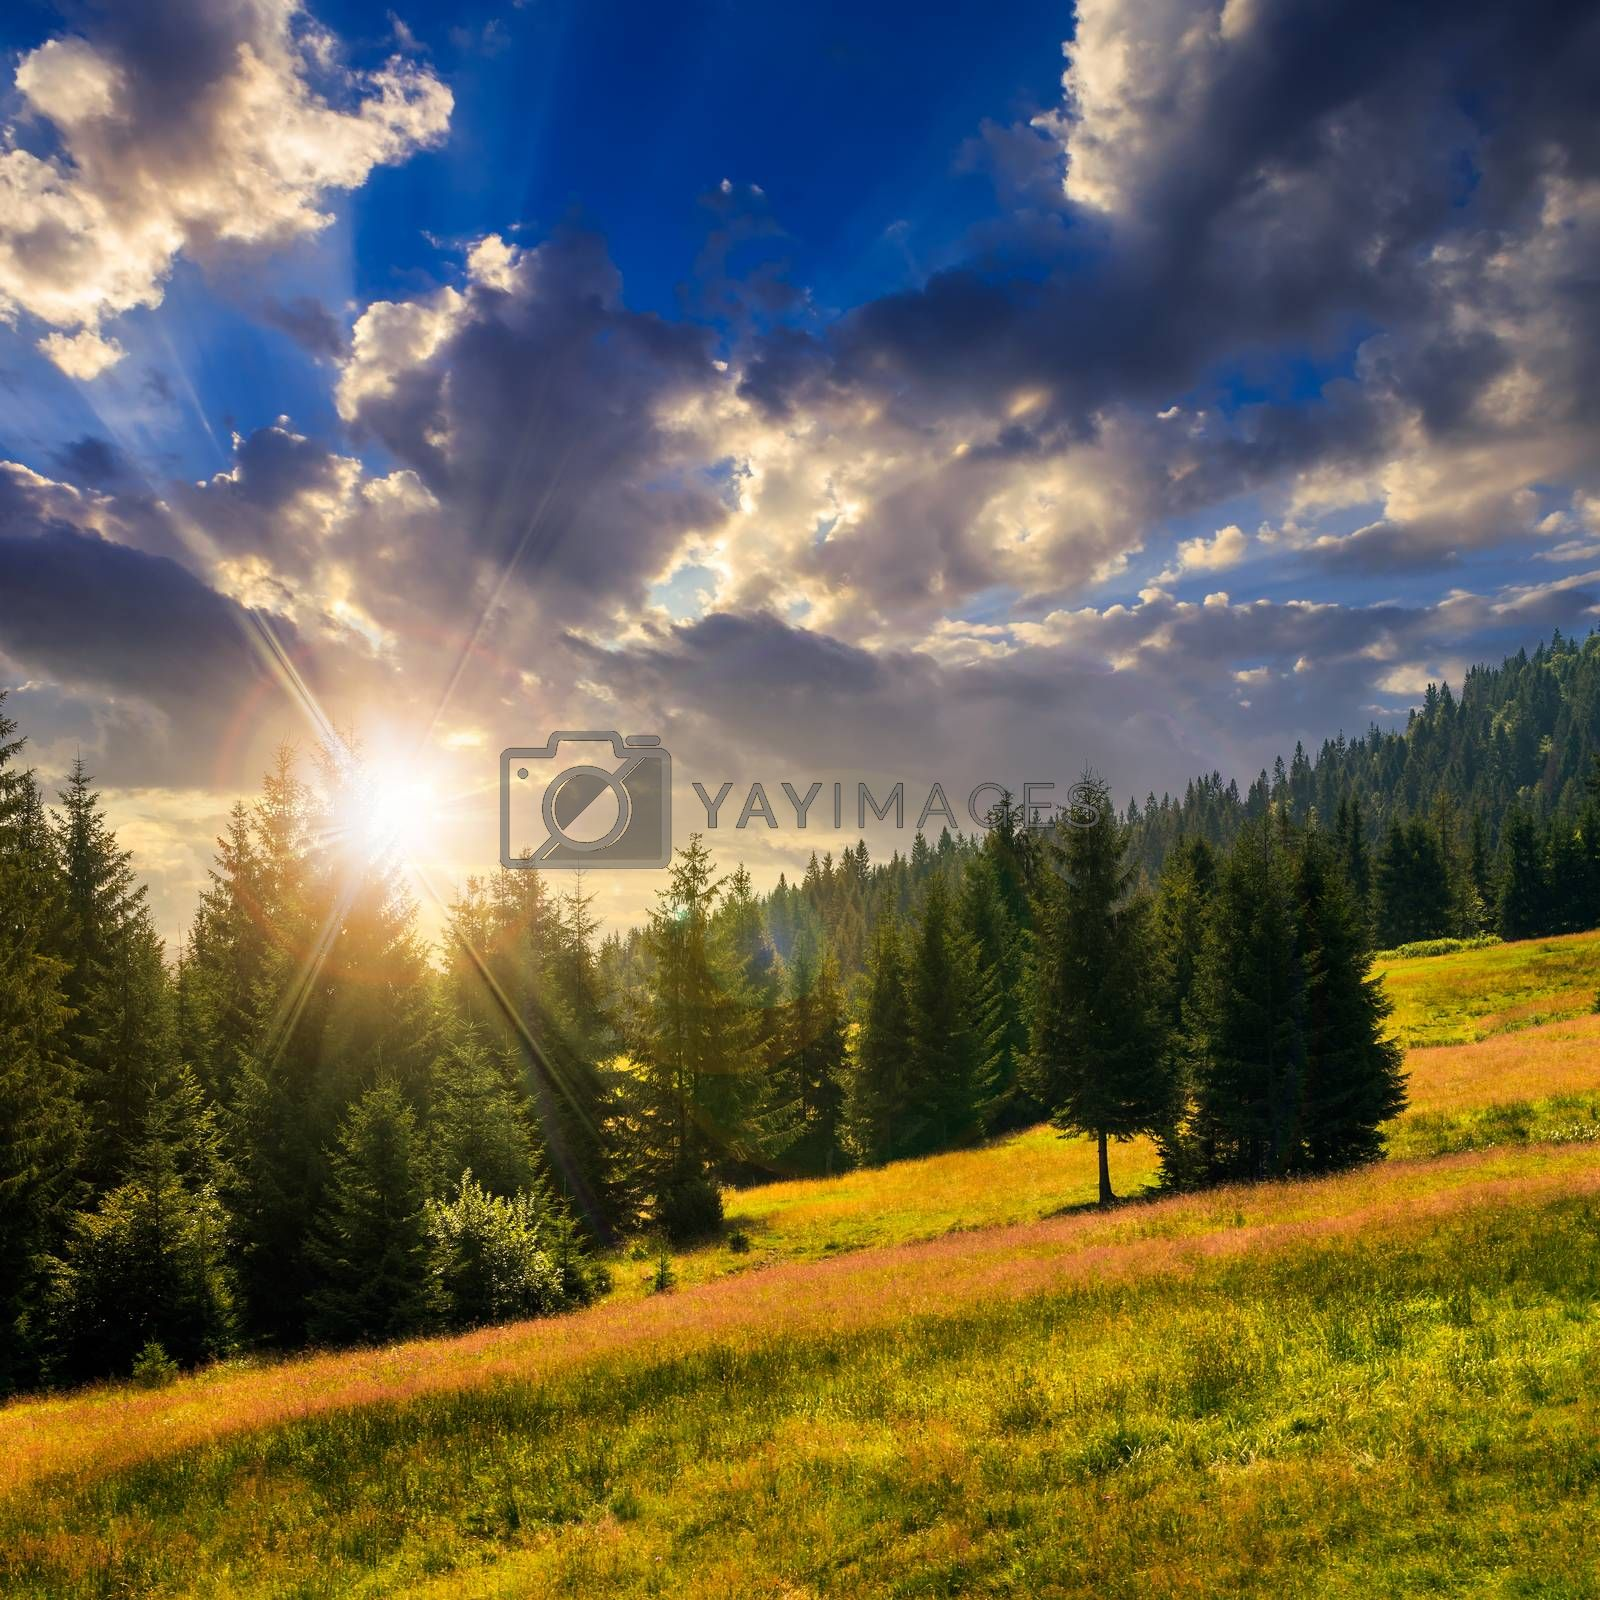 coniferous forest on a  mountain slope at sunset by Pellinni